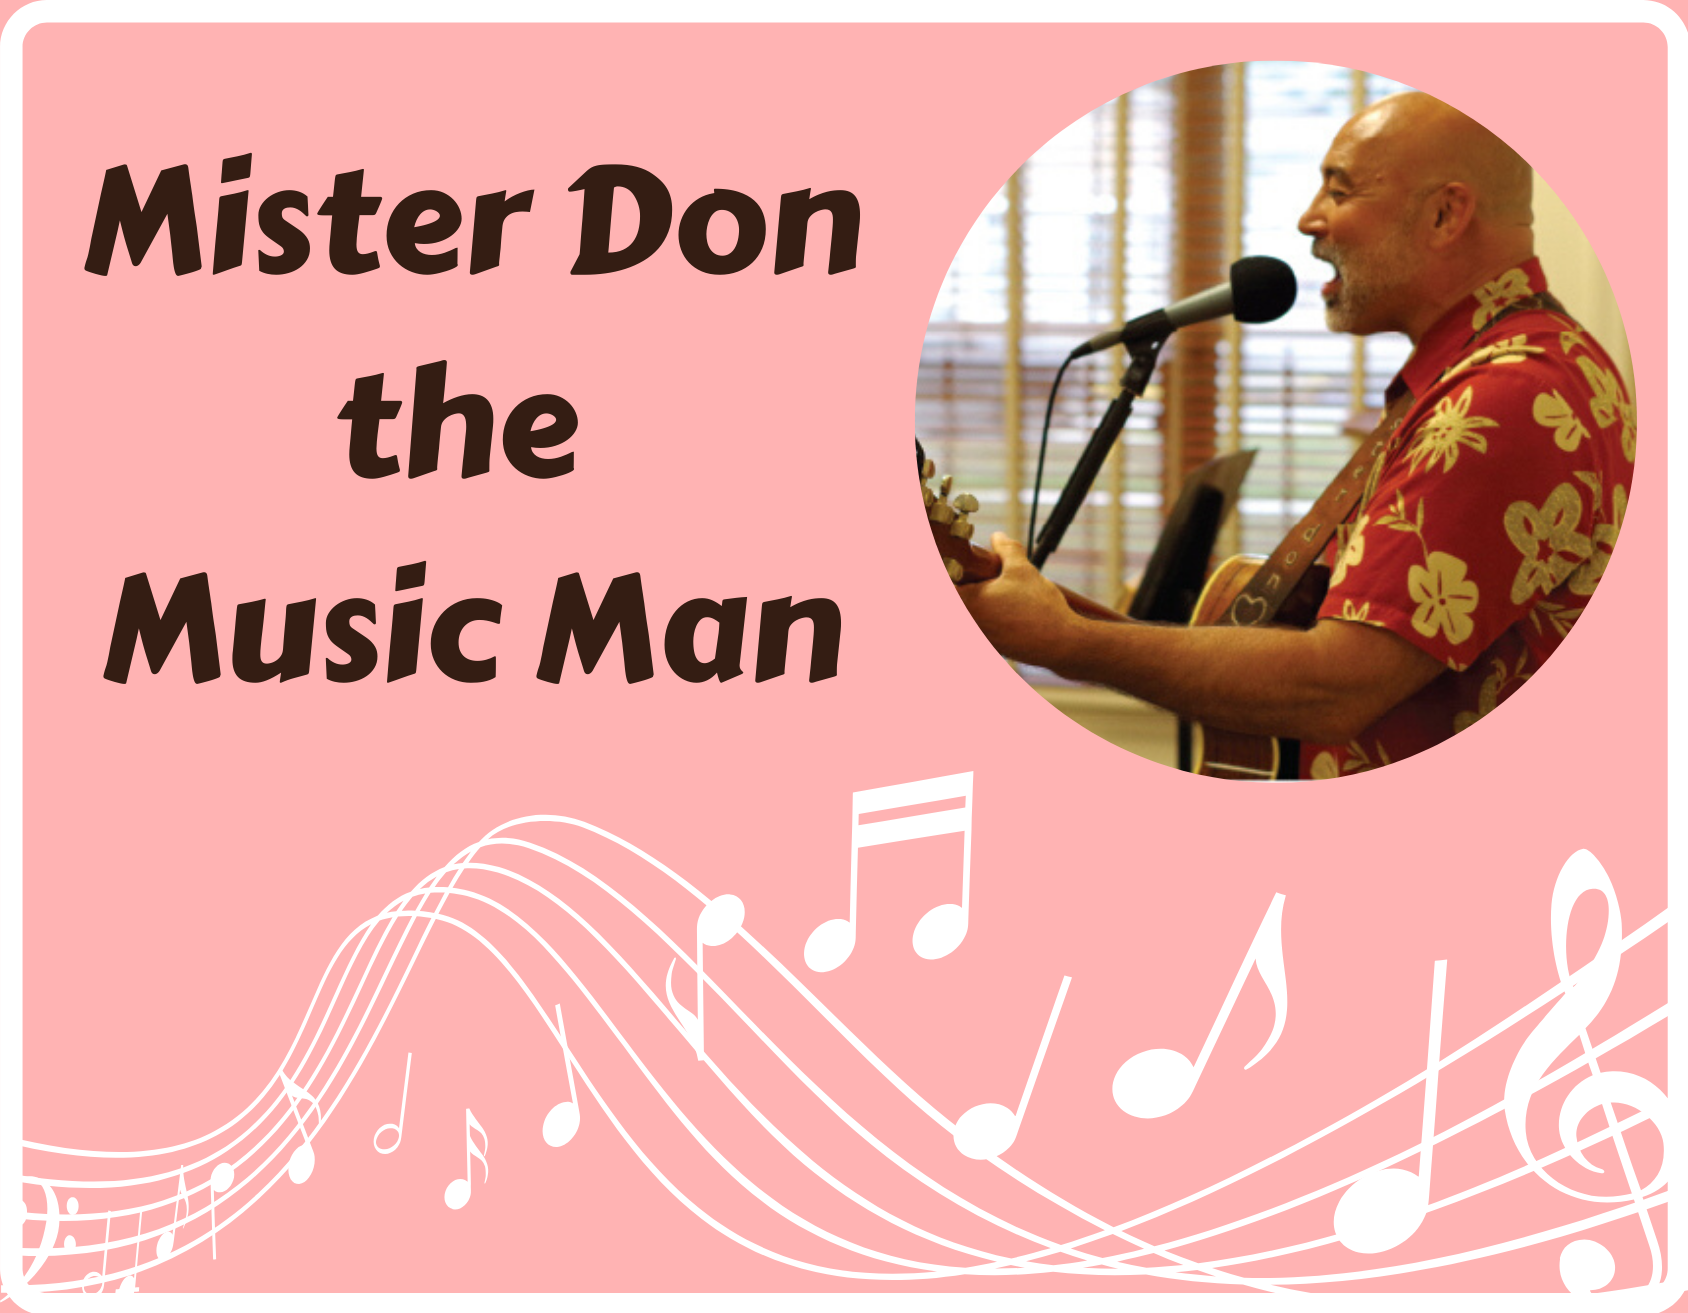 Mister Don the Music Man